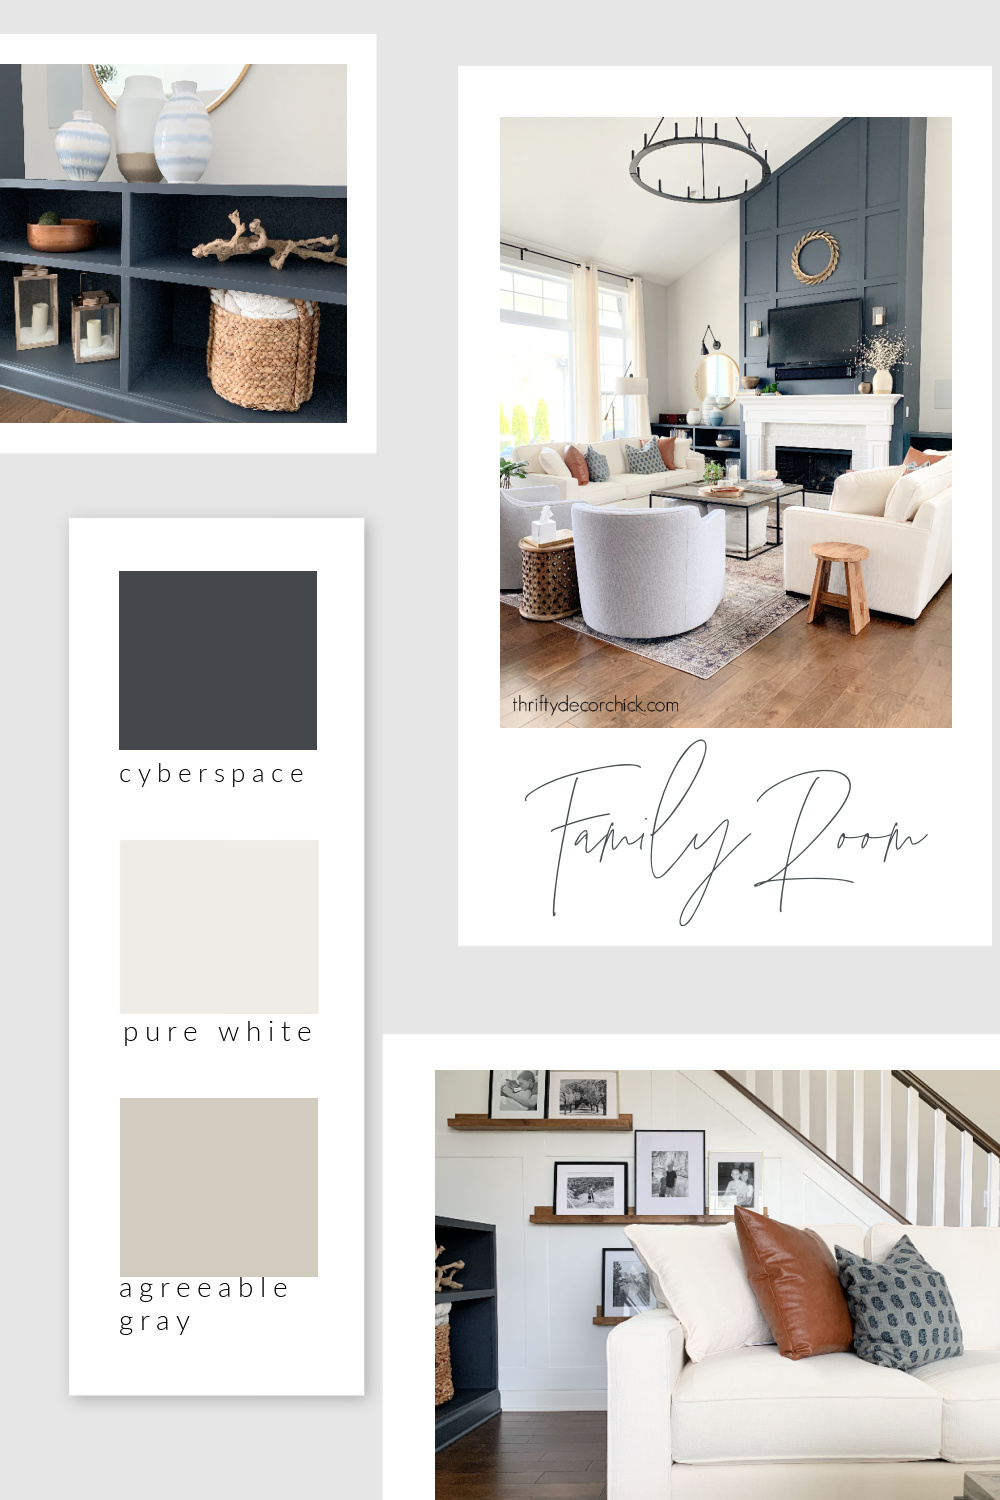 Thrifty Decor Chick family room paint colors